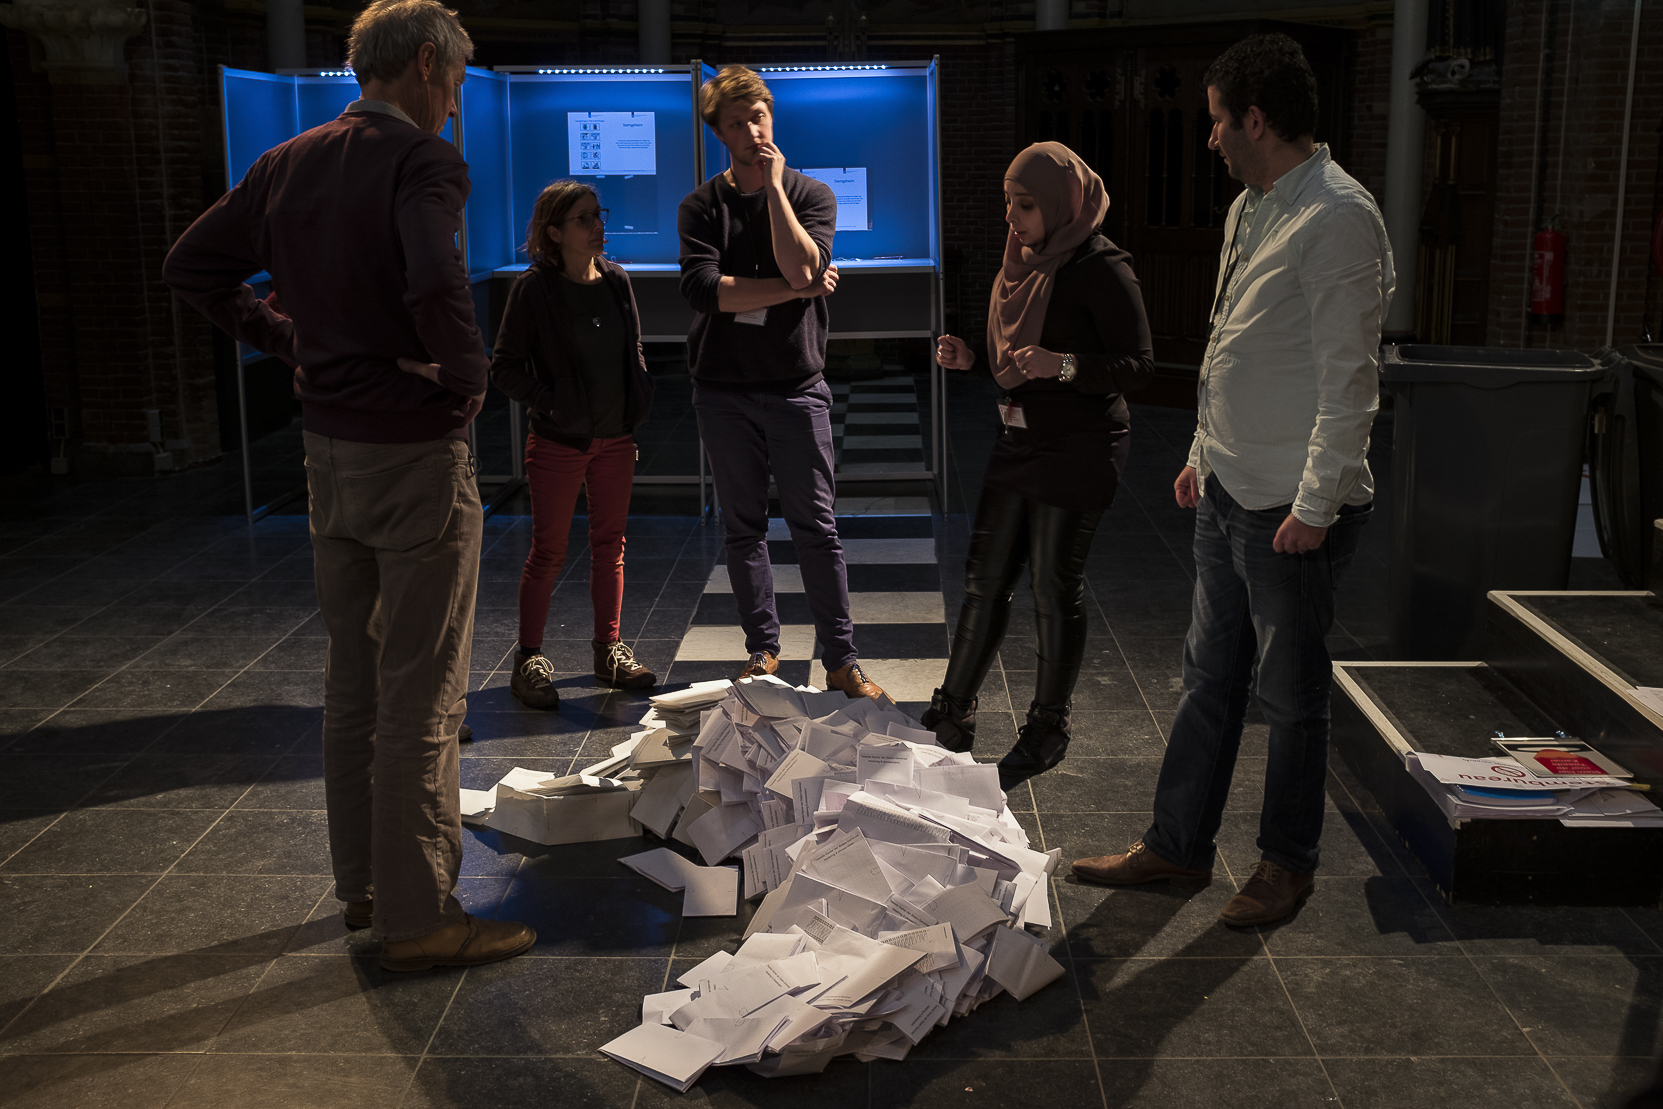 Election workers begin counting the ballots at a local voting center set up in a church in Amsterdam, Netherlands, Wednesday, March 15, 2017.